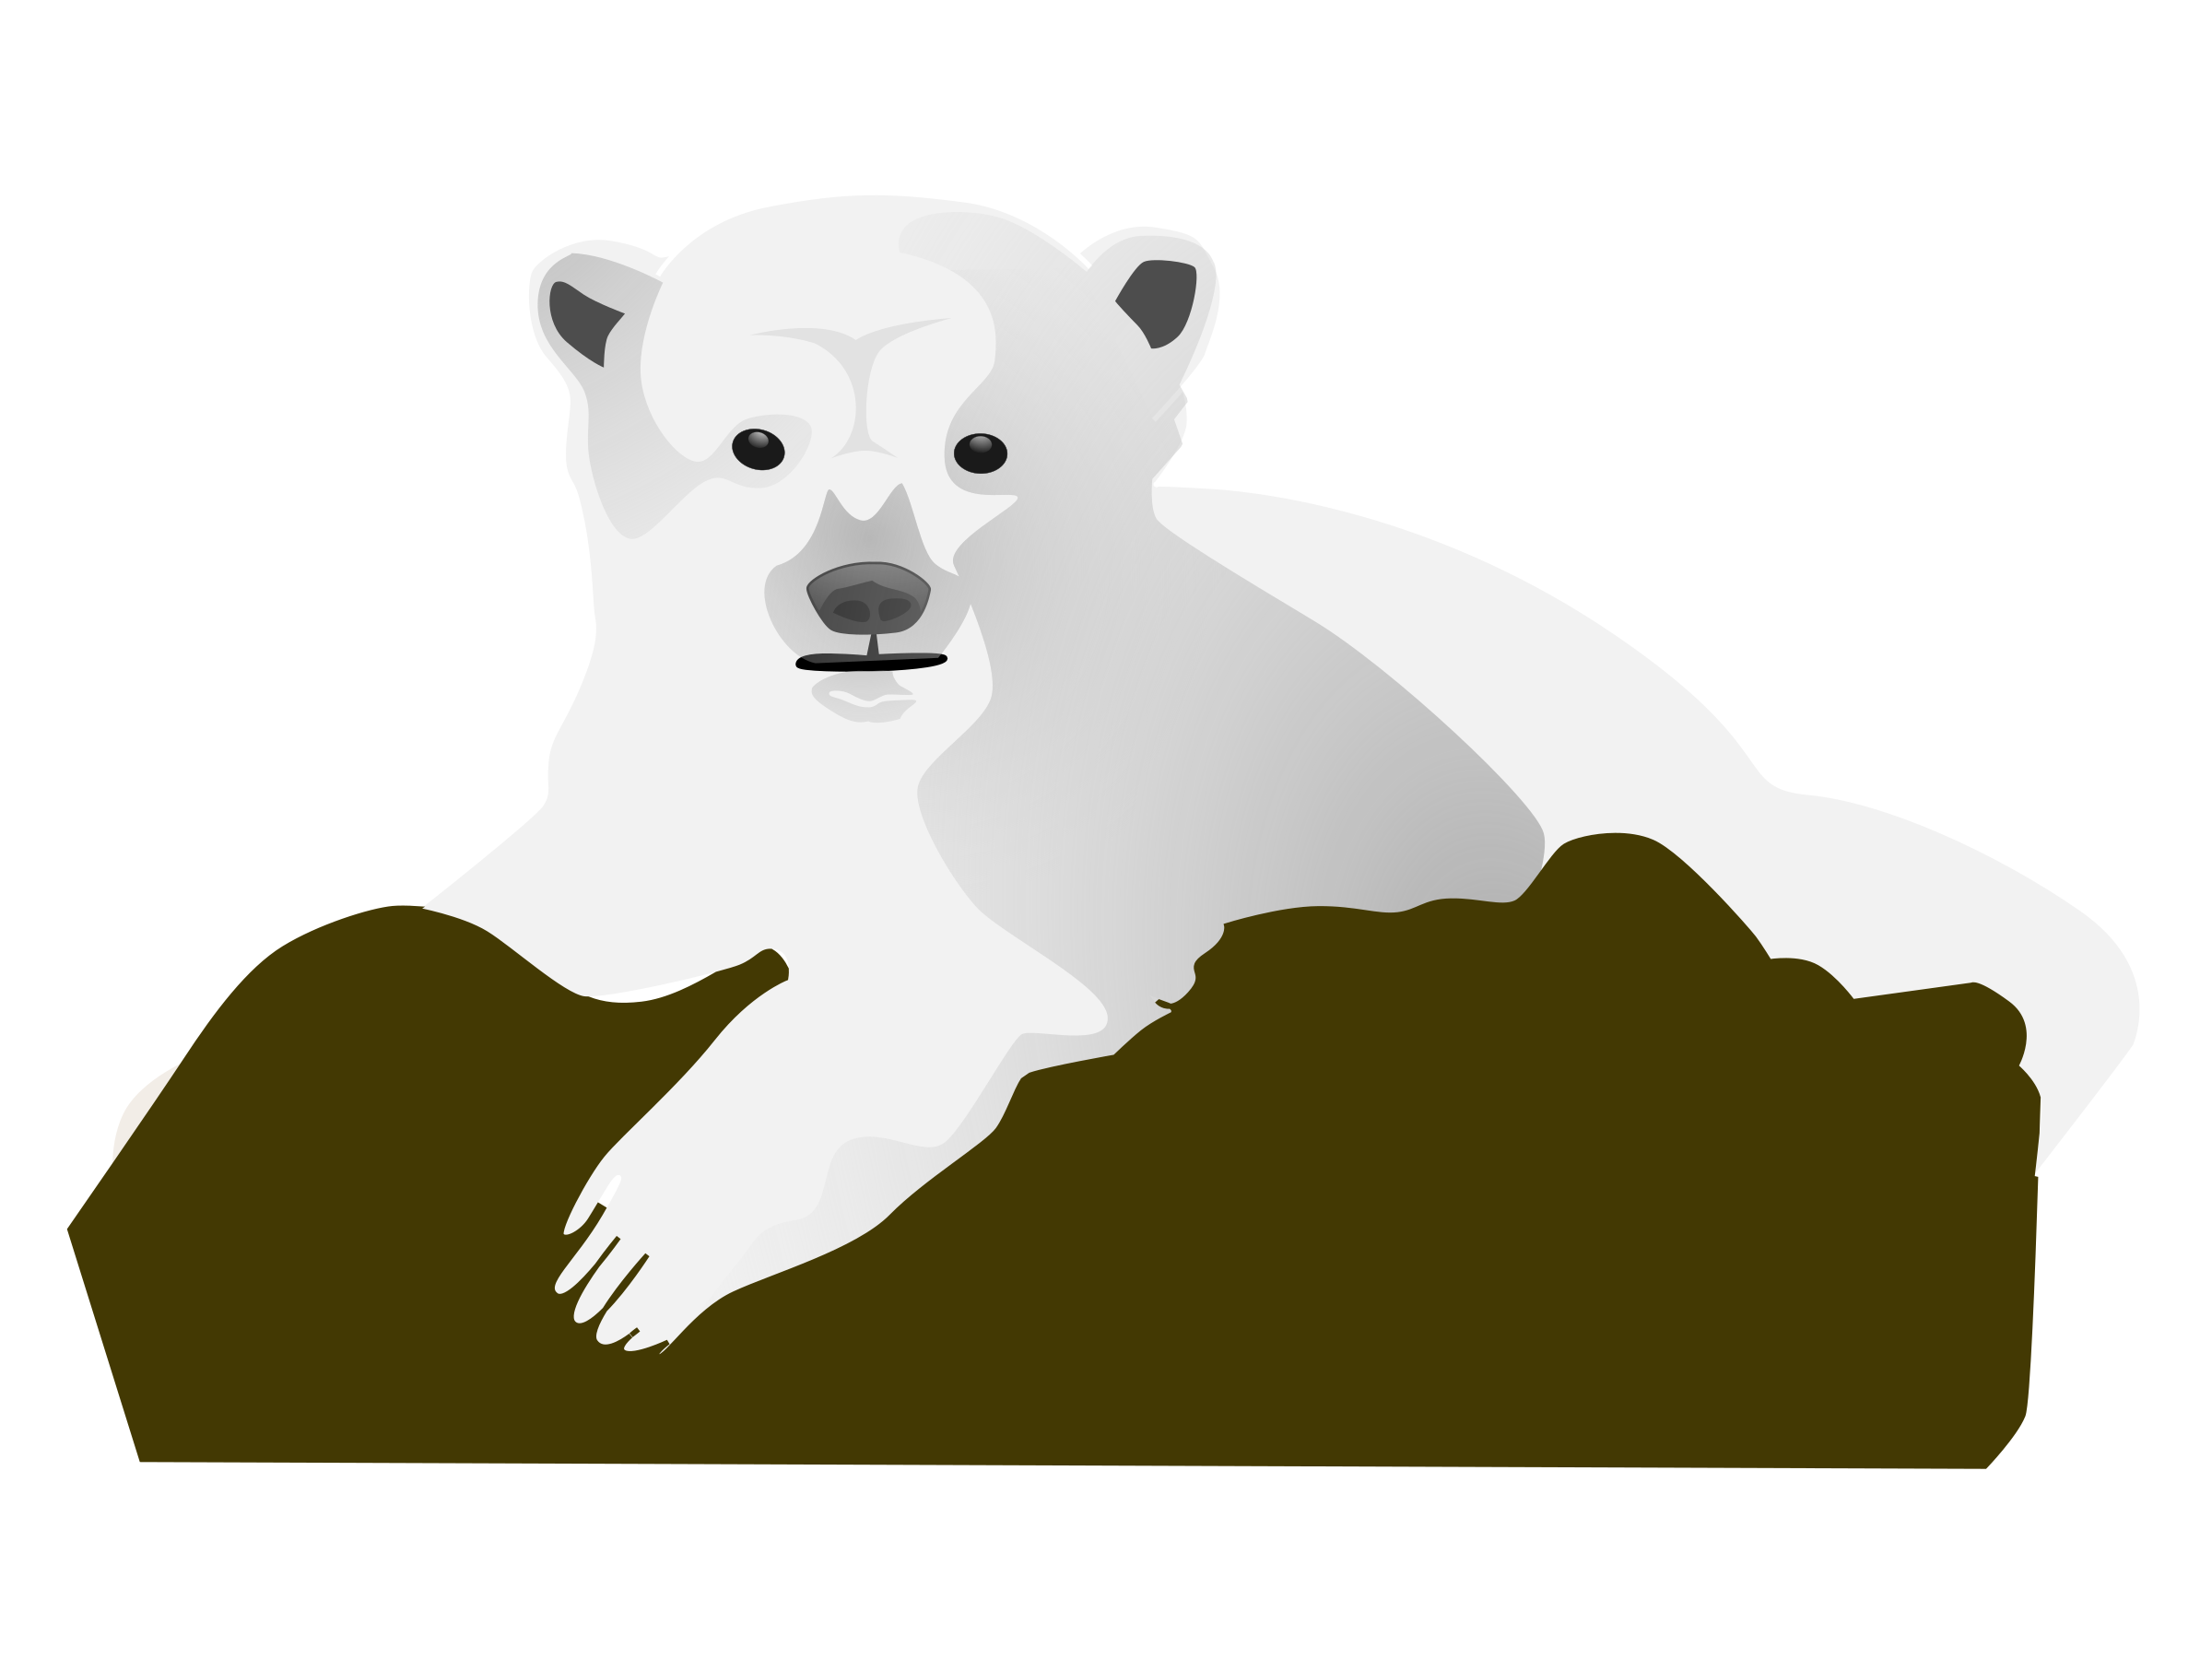 Knut the Polar Bear by aitor_avila